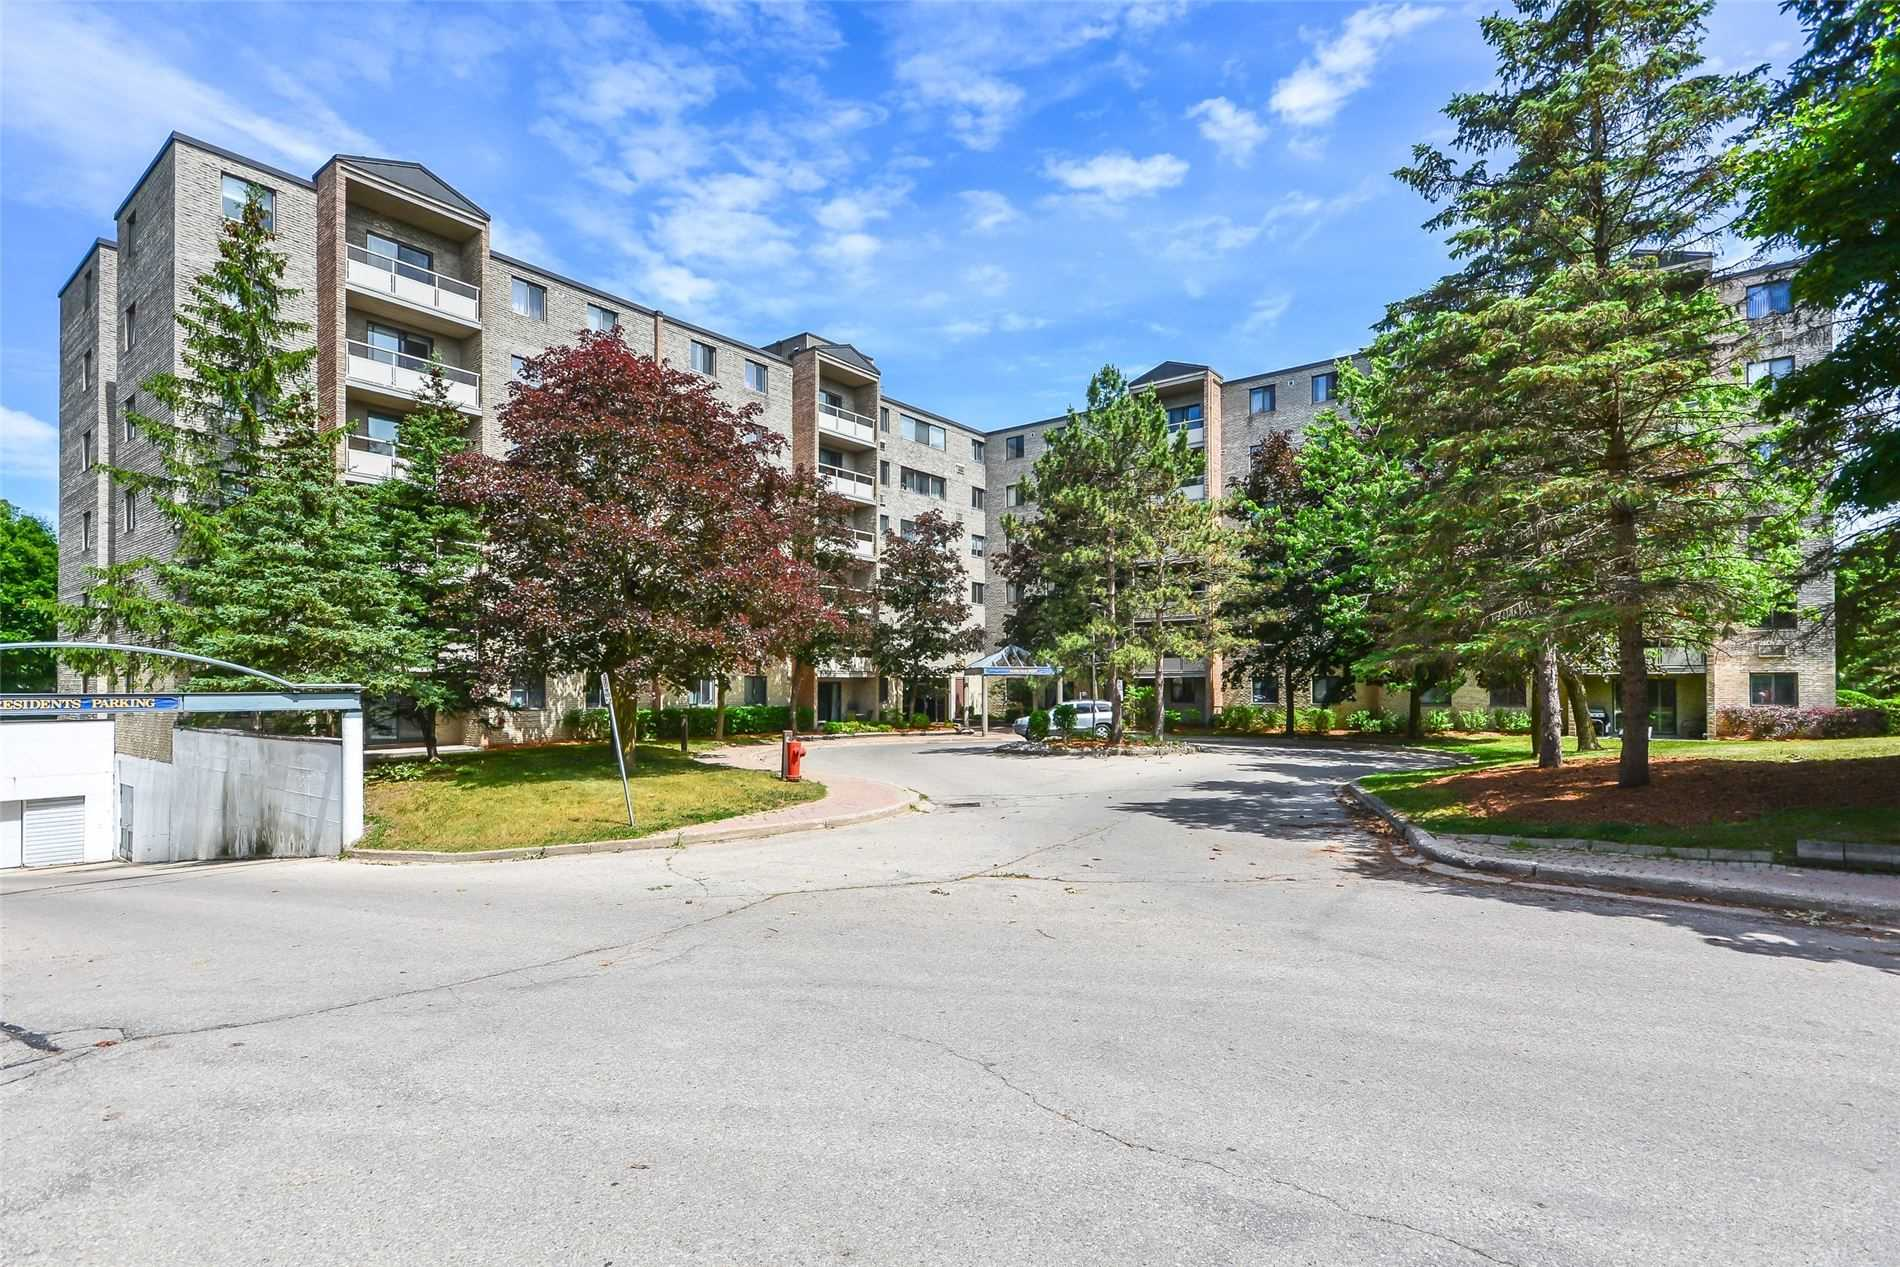 Condo Apt For Sale In Guelph , 2 Bedrooms Bedrooms, ,2 BathroomsBathrooms,Condo Apt,For Sale,602,Westwood